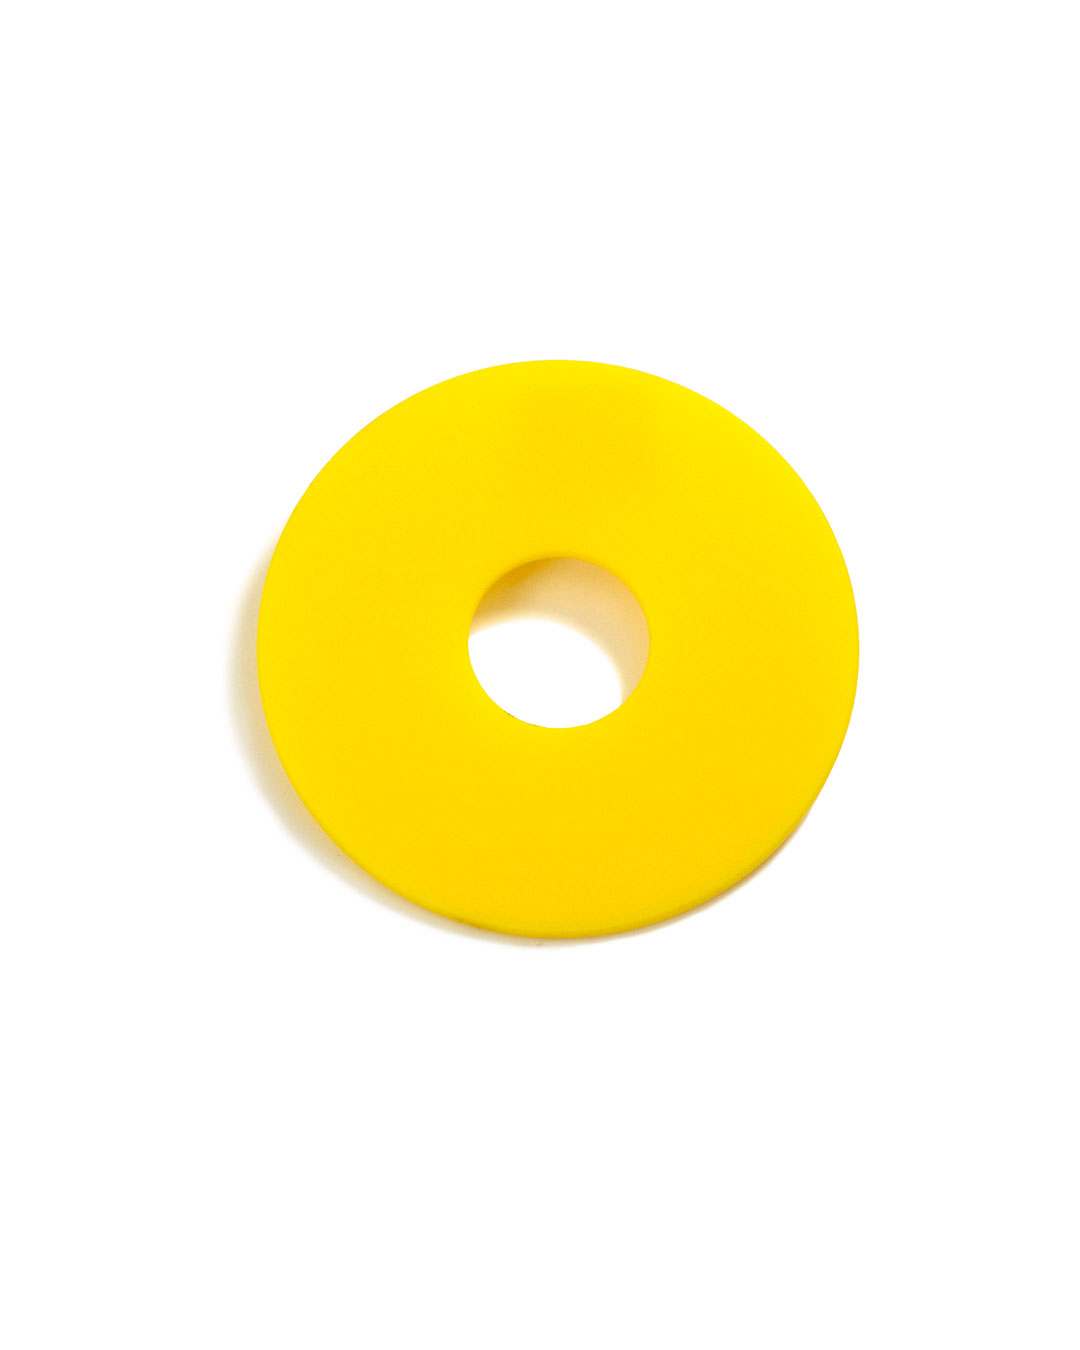 Herman Hermsen, untitled, 1985, brooch; plastic, 98 x 3 mm, €50